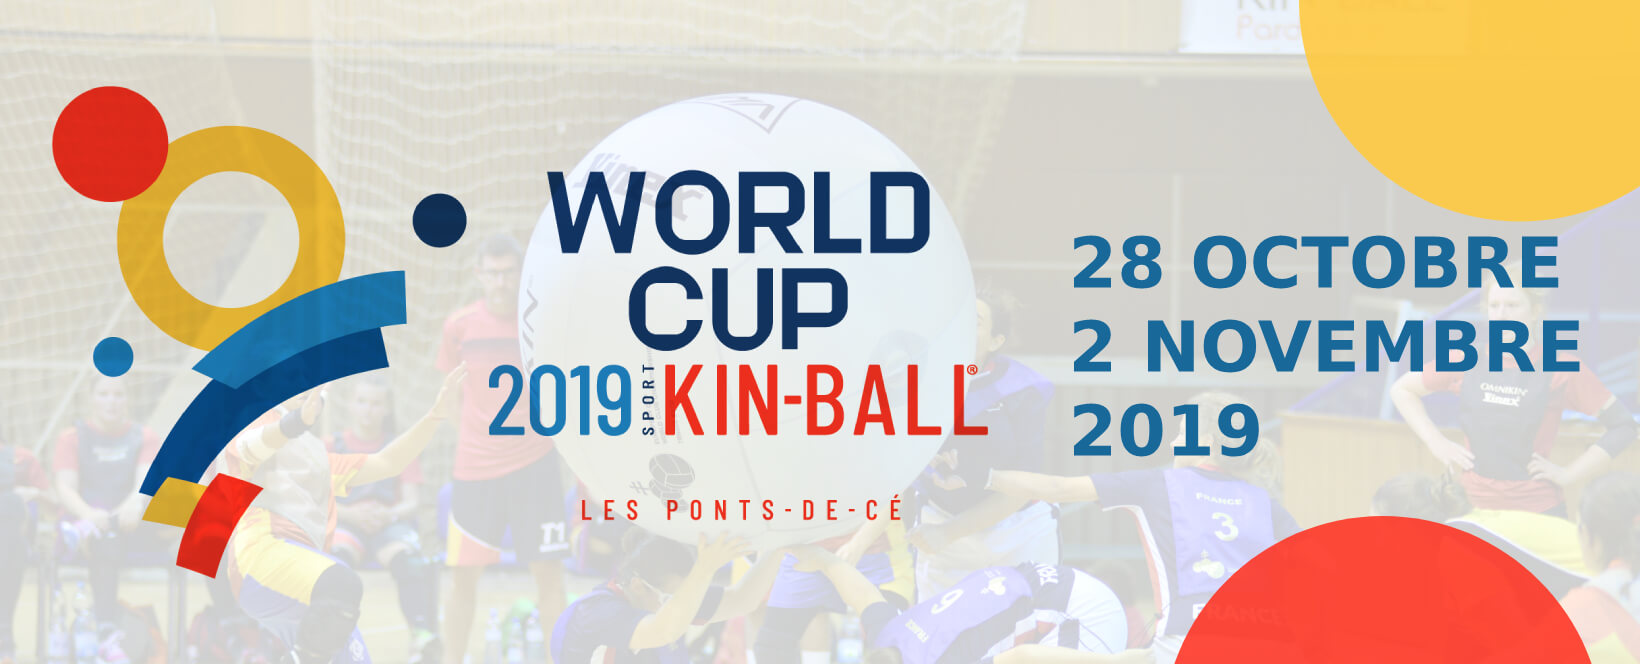 dates coupe du monde de sport Kin-Ball 2019